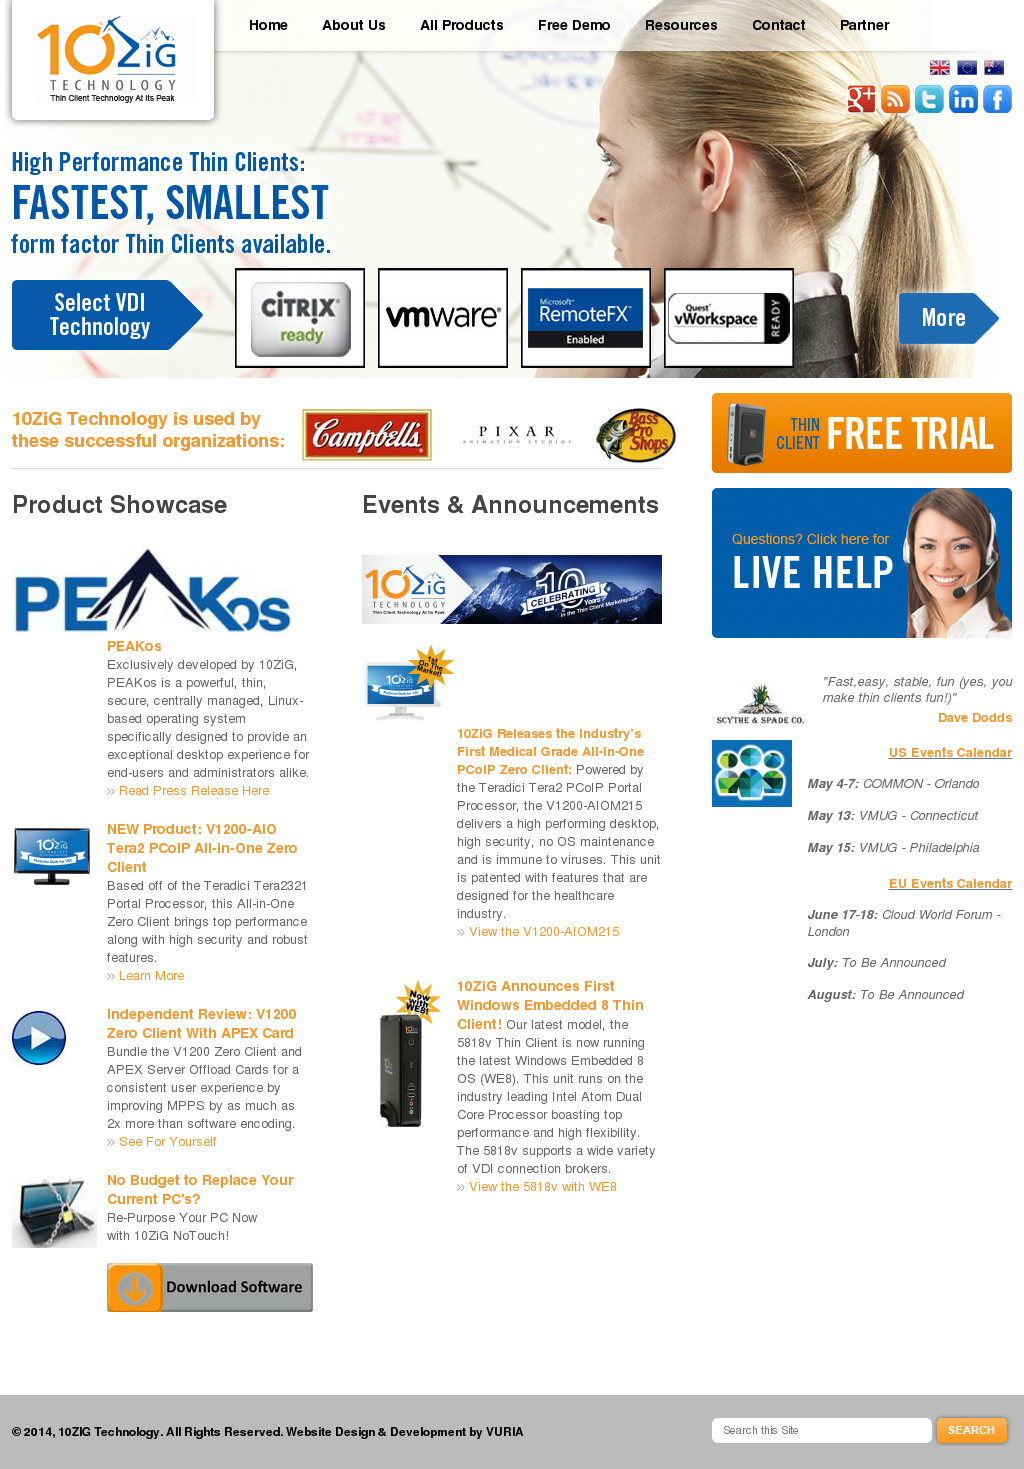 10ZiG Competitors, Revenue and Employees - Owler Company Profile